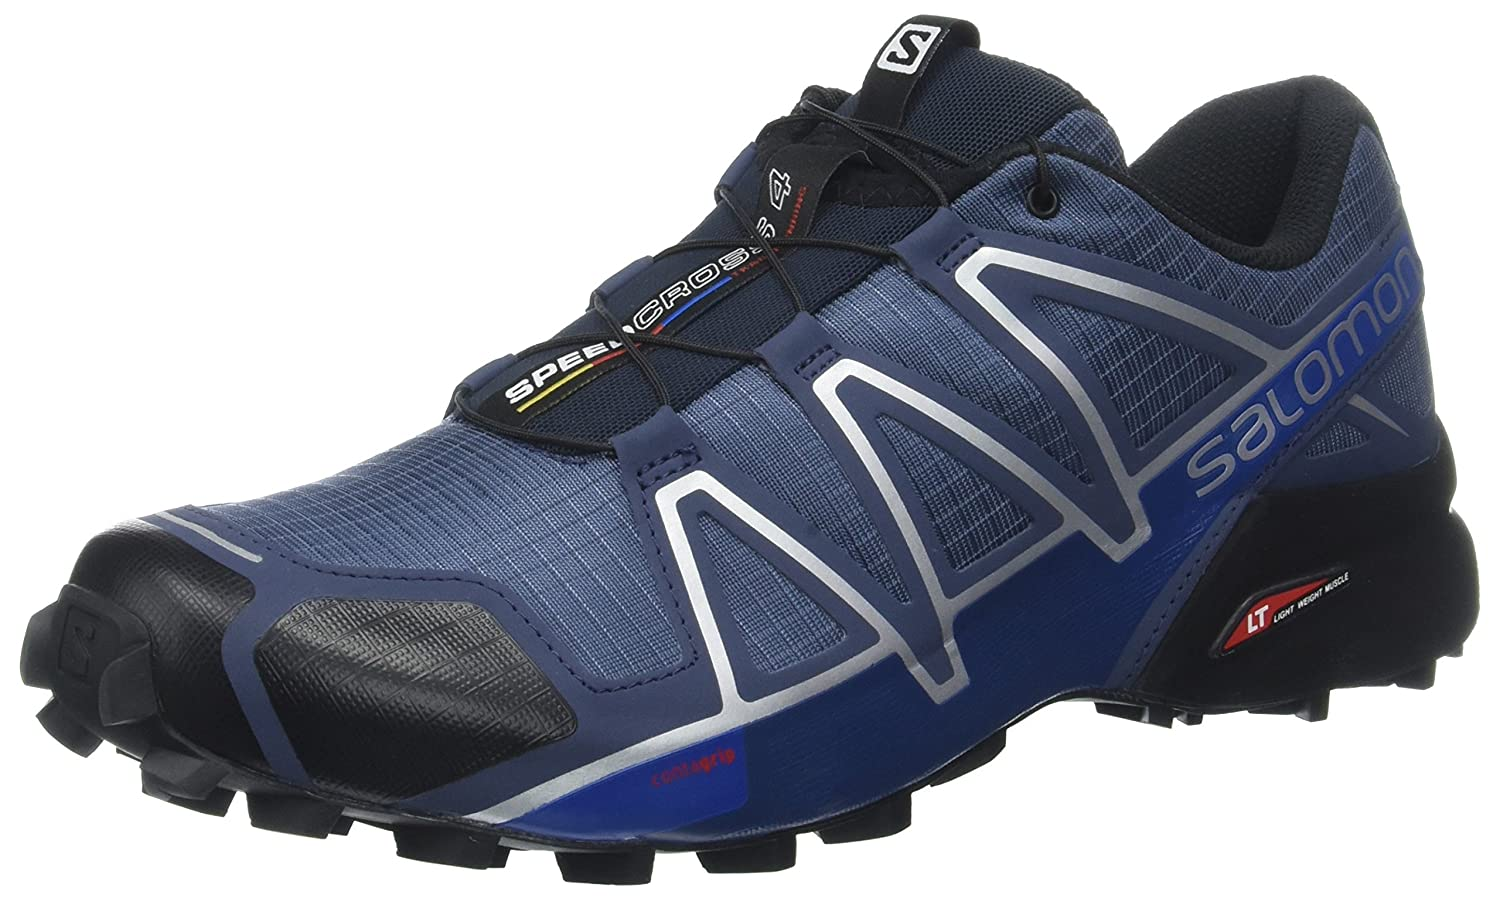 e995fe988d74 Salomon Men s Speedcross 4 Trail Running Shoes  Amazon.co.uk  Shoes   Bags